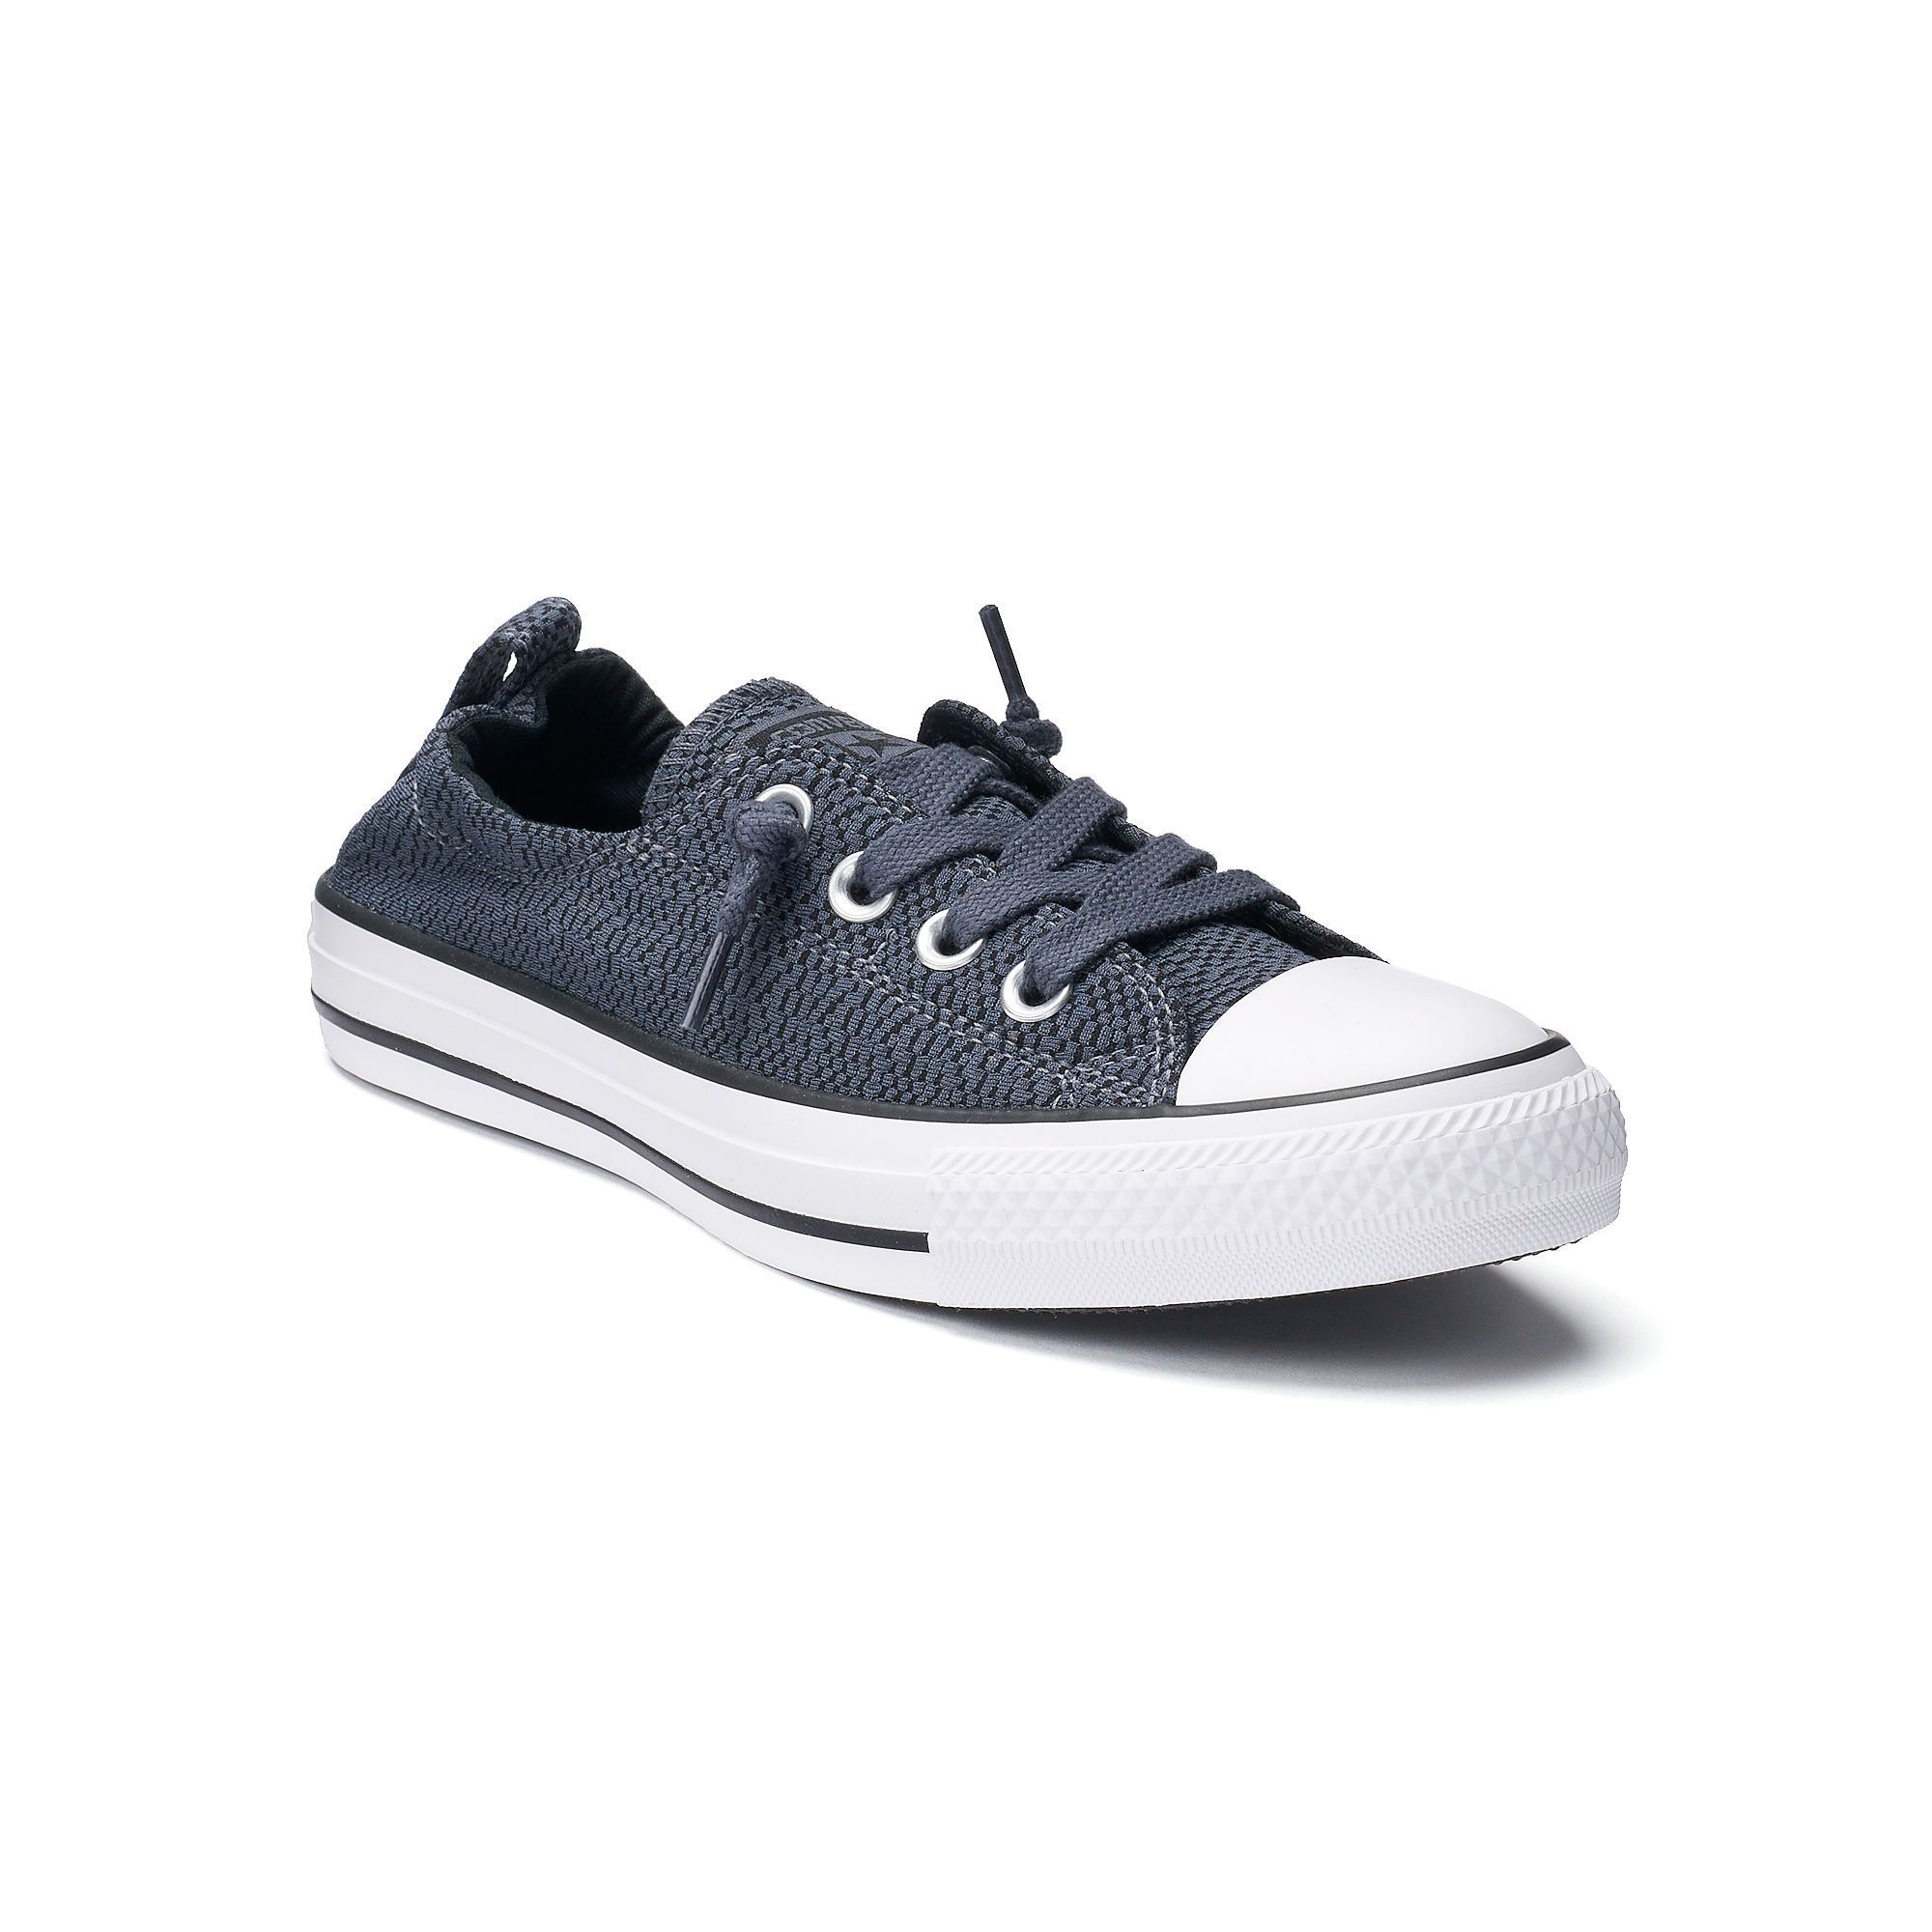 Sharks Camo Blue And Grey Women's Casual Shoes Sneakers Footwear Cool Fashion Simple